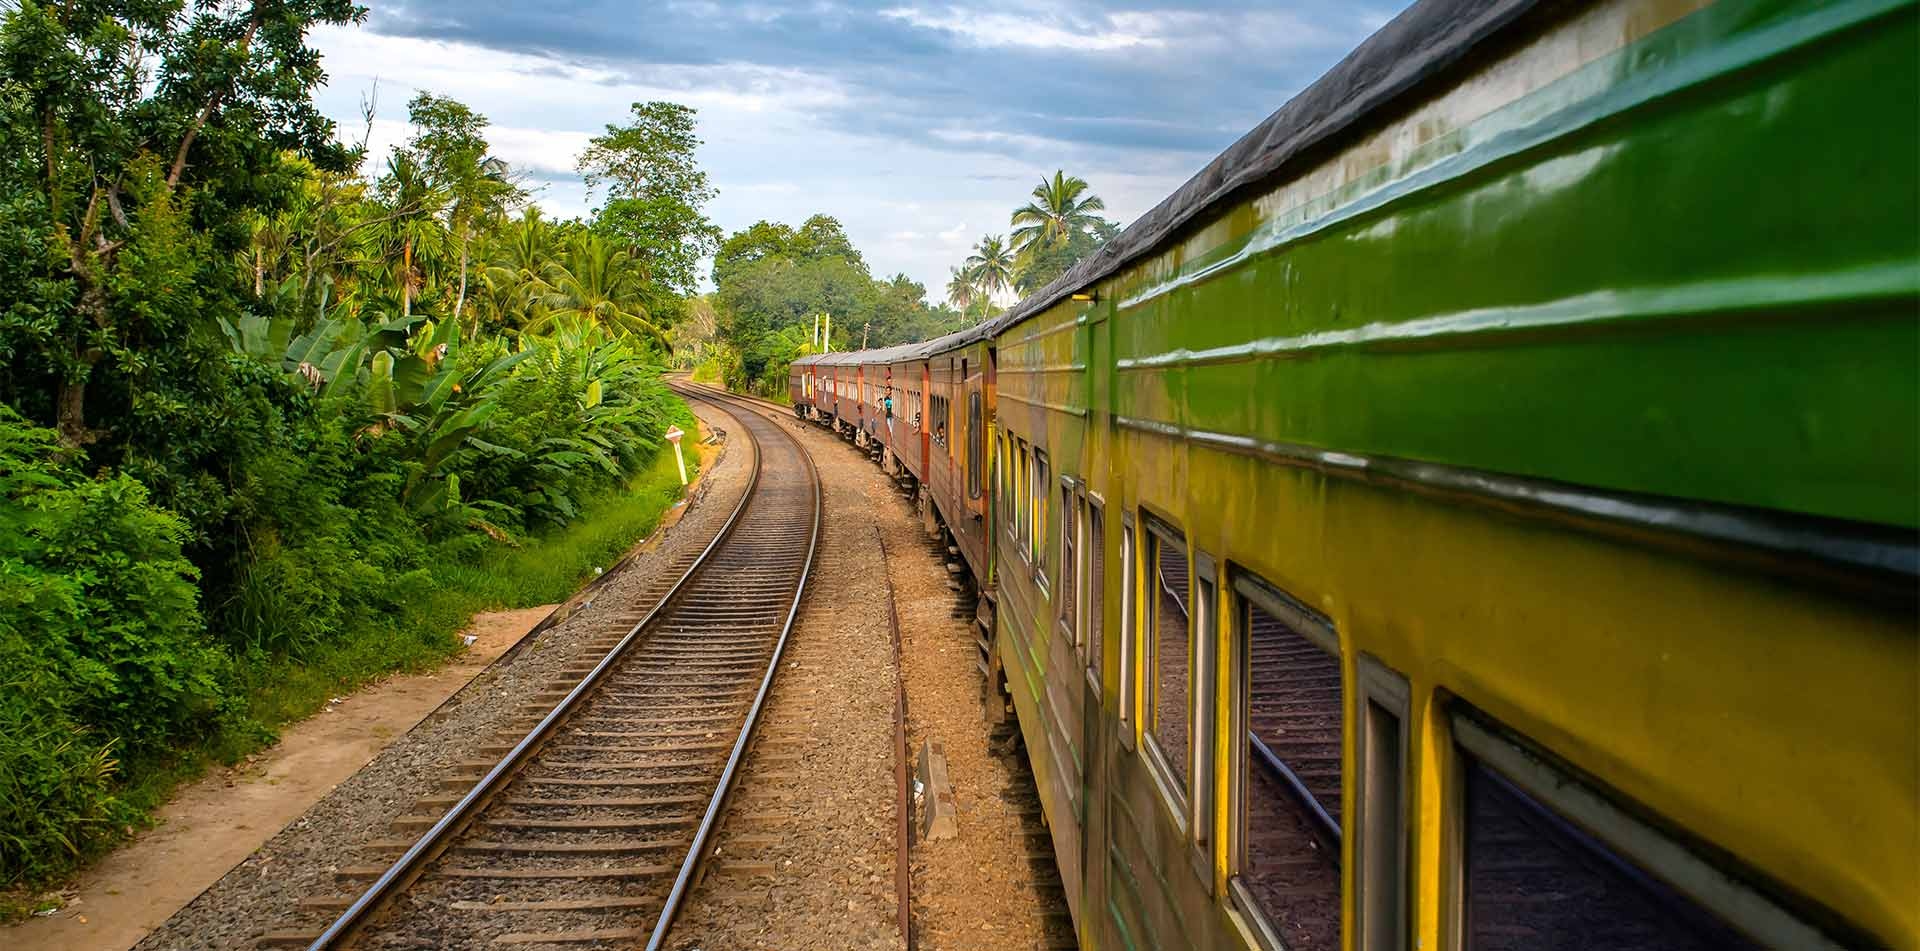 Asia India colorful train going through rural India countryside - luxury vacation destinations